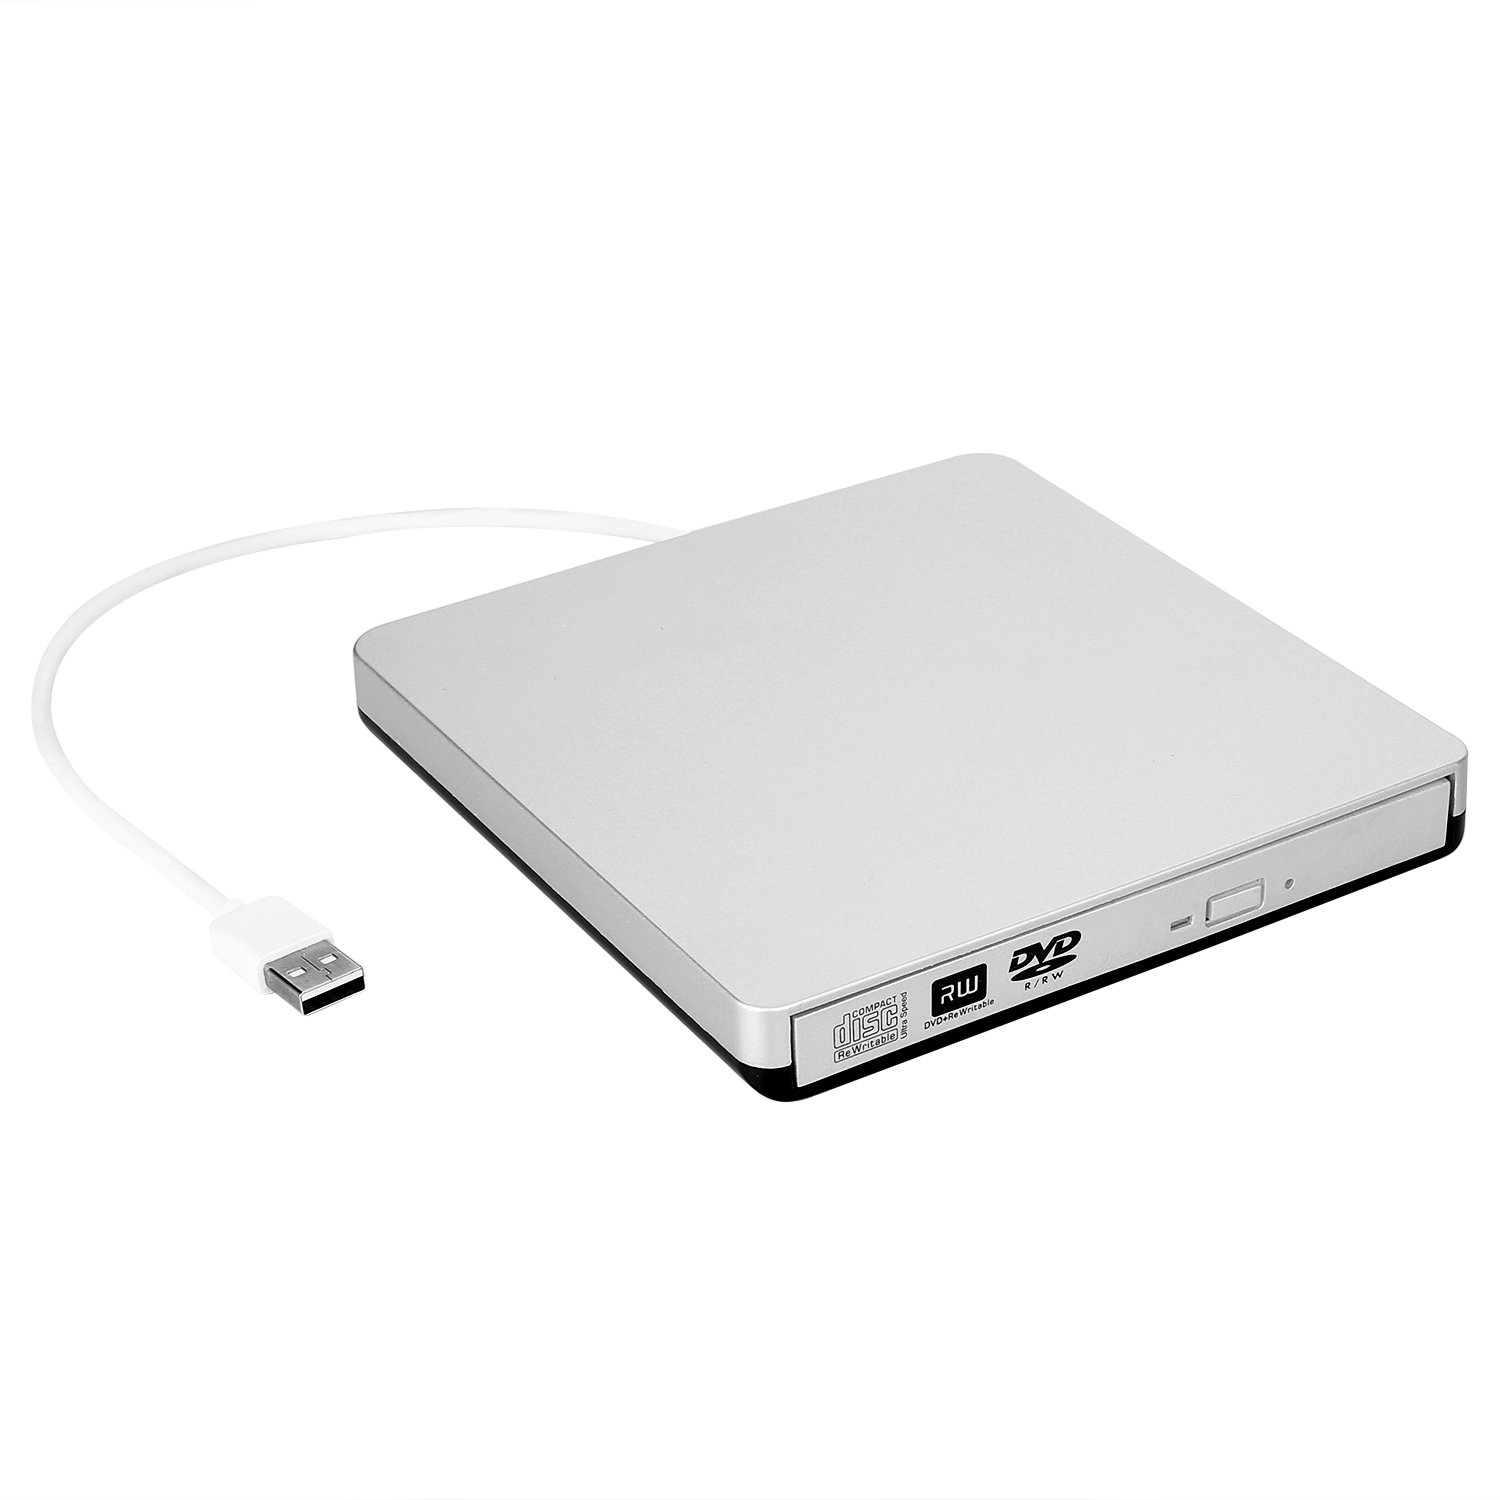 ZSMJ USB 2.0 External CD Drive,DVD-R CD-RW Writer/Burner/Player with Classic Silvery for MacBook Air, MacBook Pro, Mac OS, PC Laptop(Silvery)